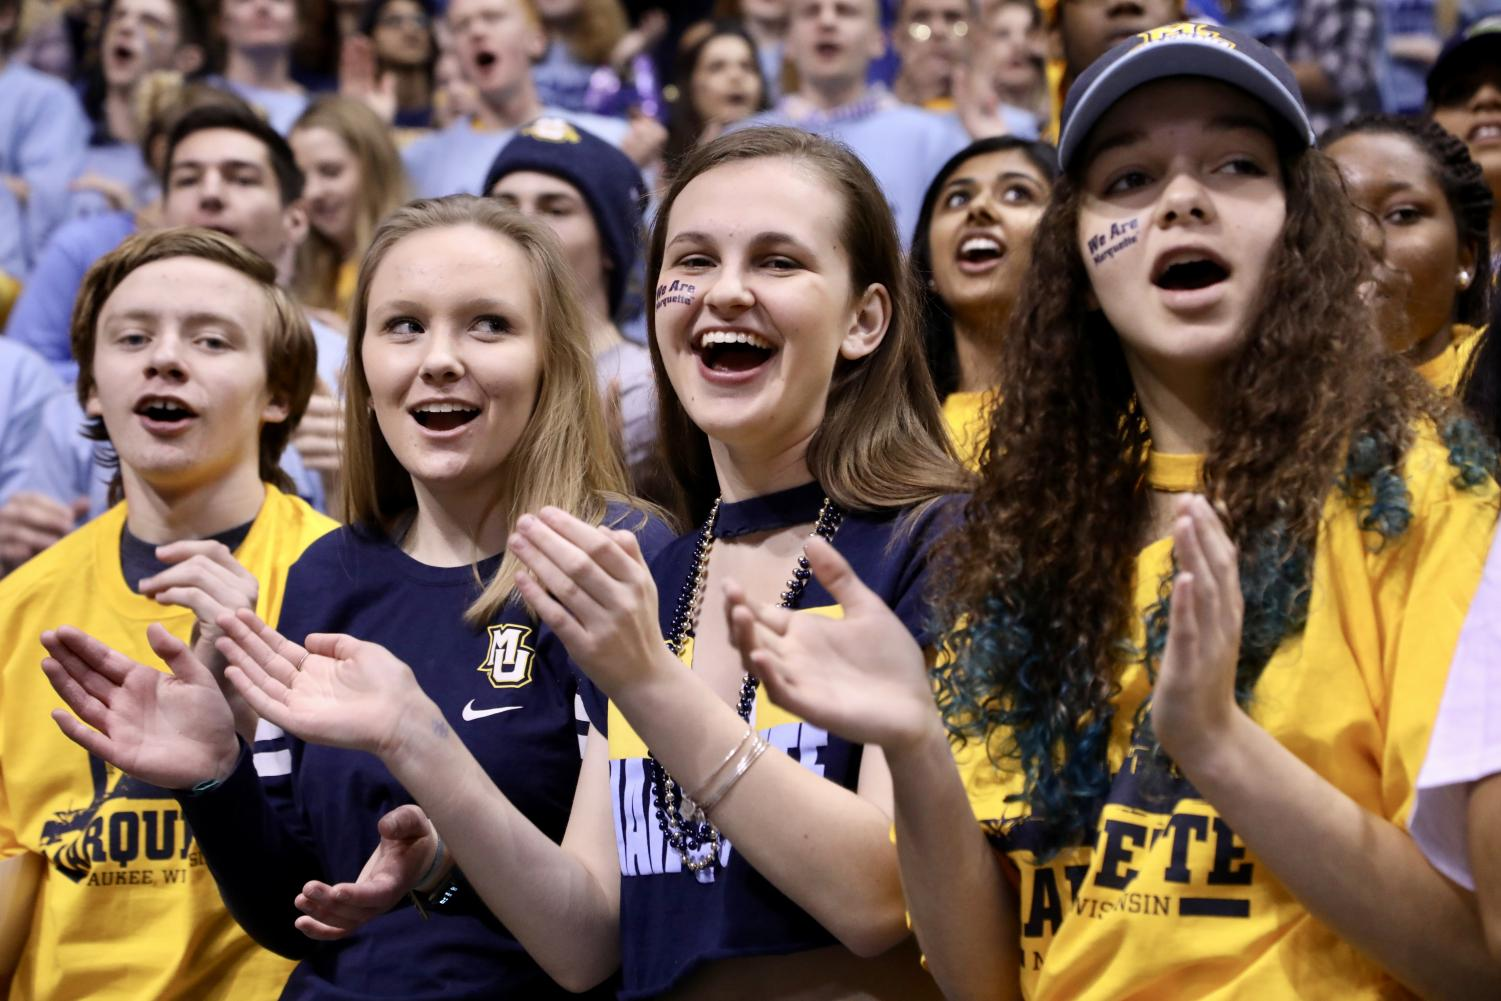 Students cheer in the stands of the Bradley Center at the Men's Basketball game on National Marquette Day 2018.